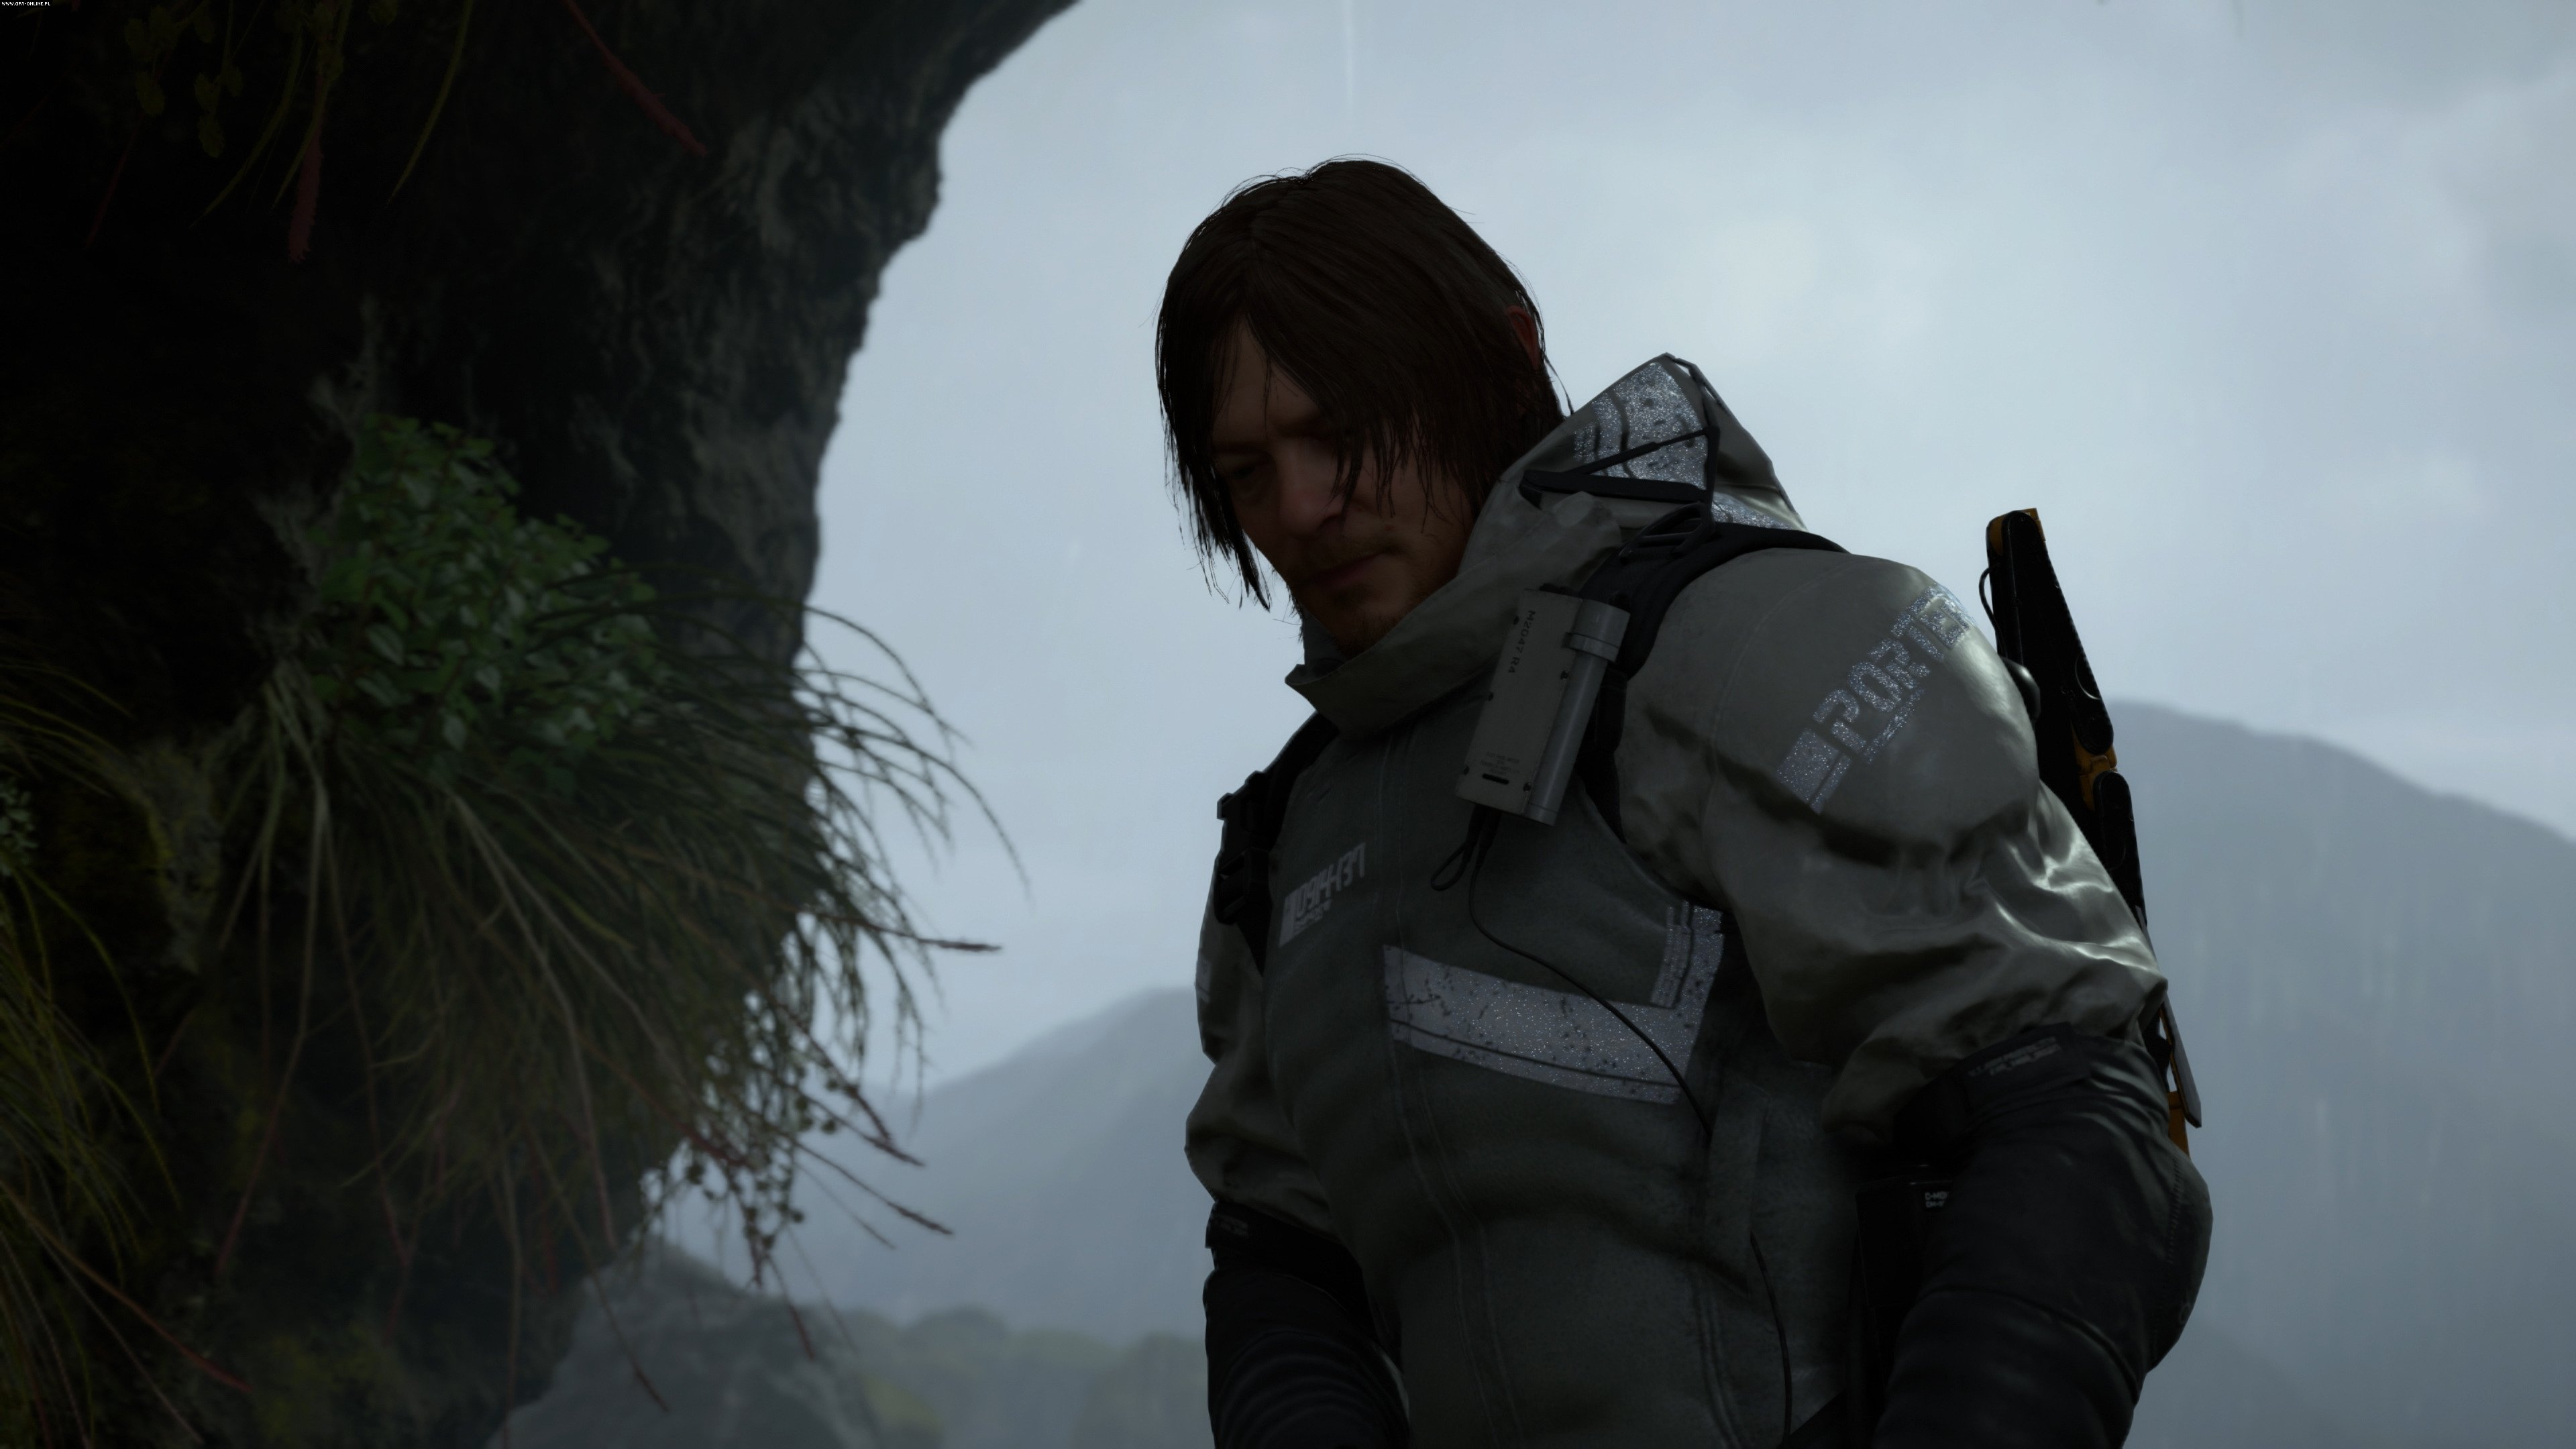 Death Stranding PS4 Games Image 39/58, Kojima Productions, Sony Interactive Entertainment